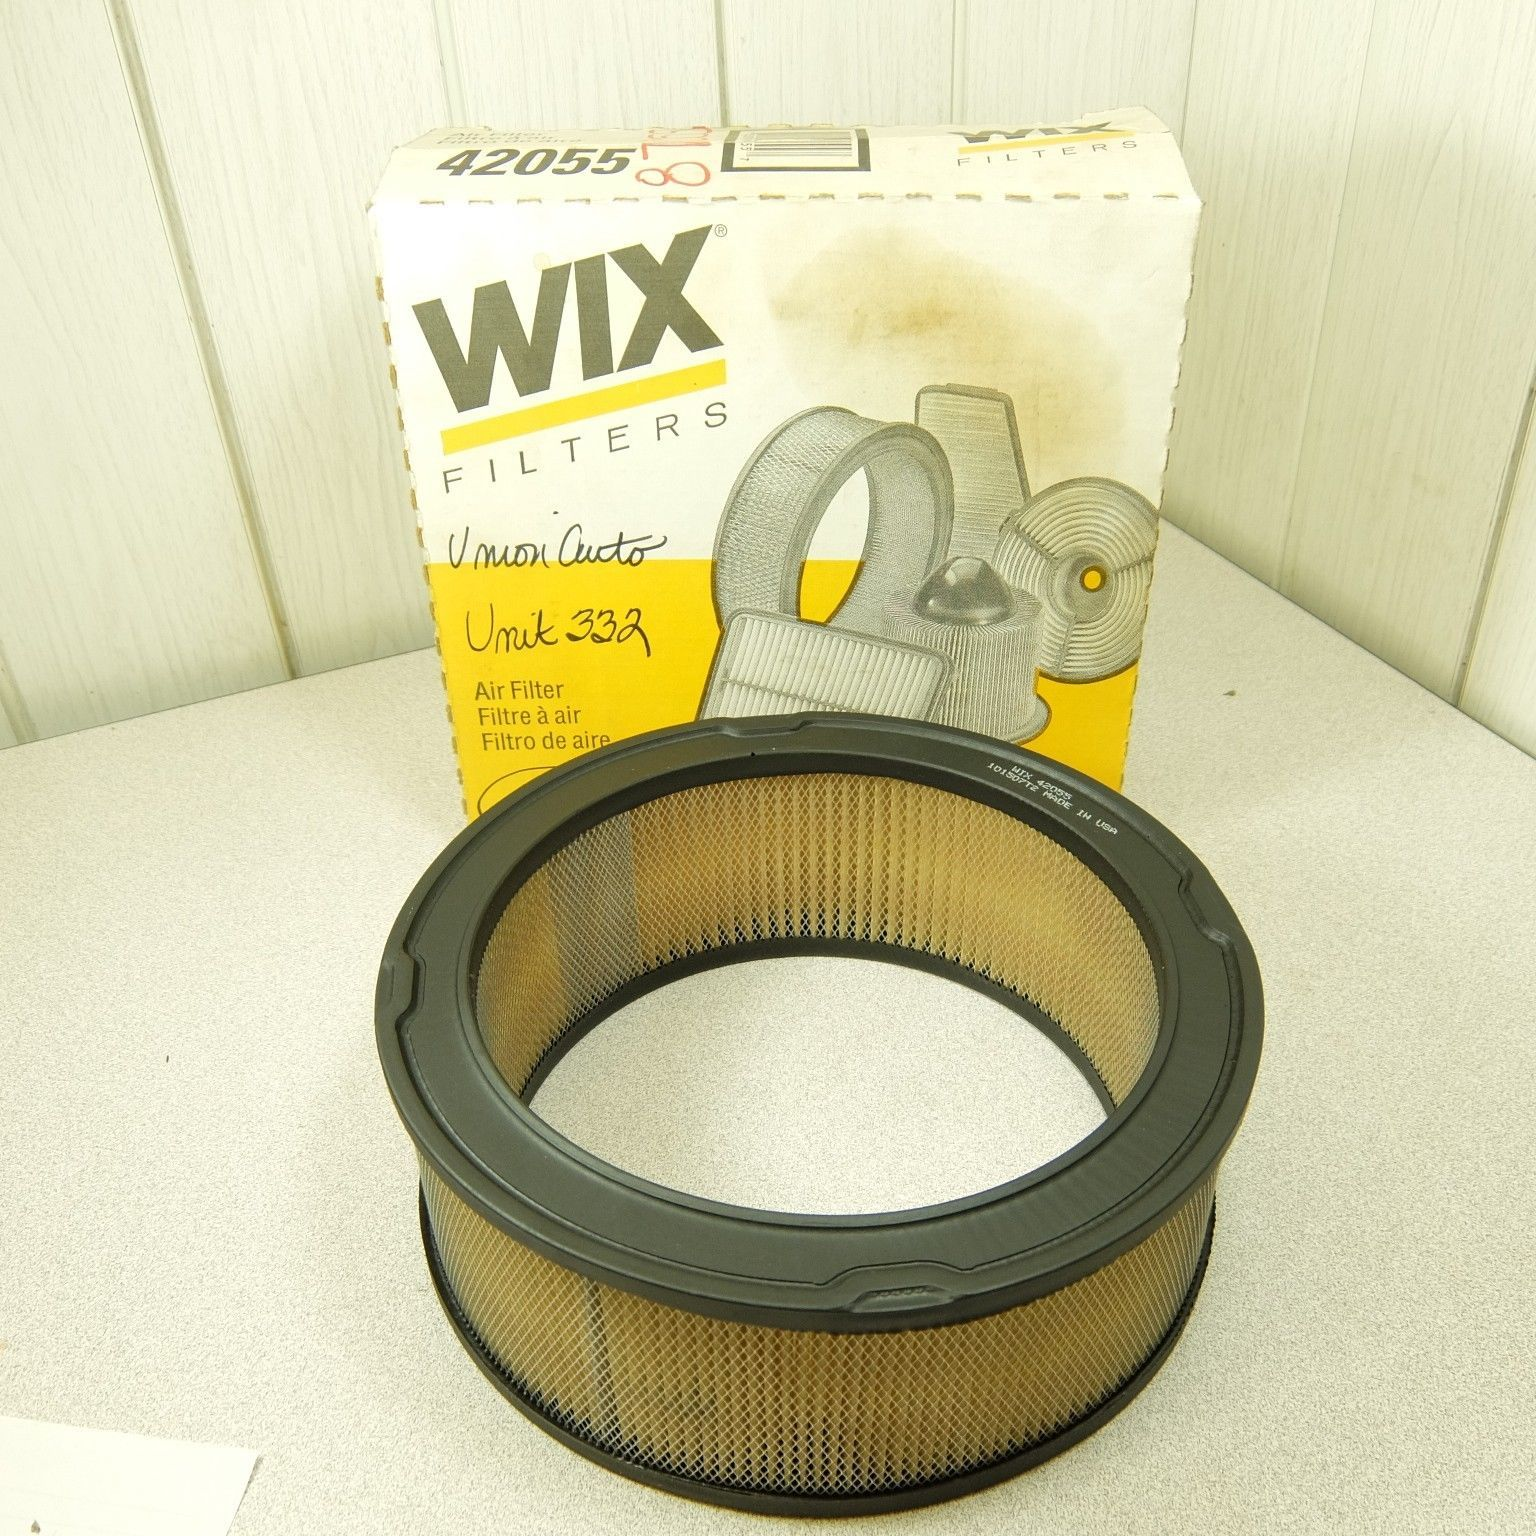 Wix 42055 Air Filter fits Ford Fairlane Galaxy Bronco some Pickups - $7.00